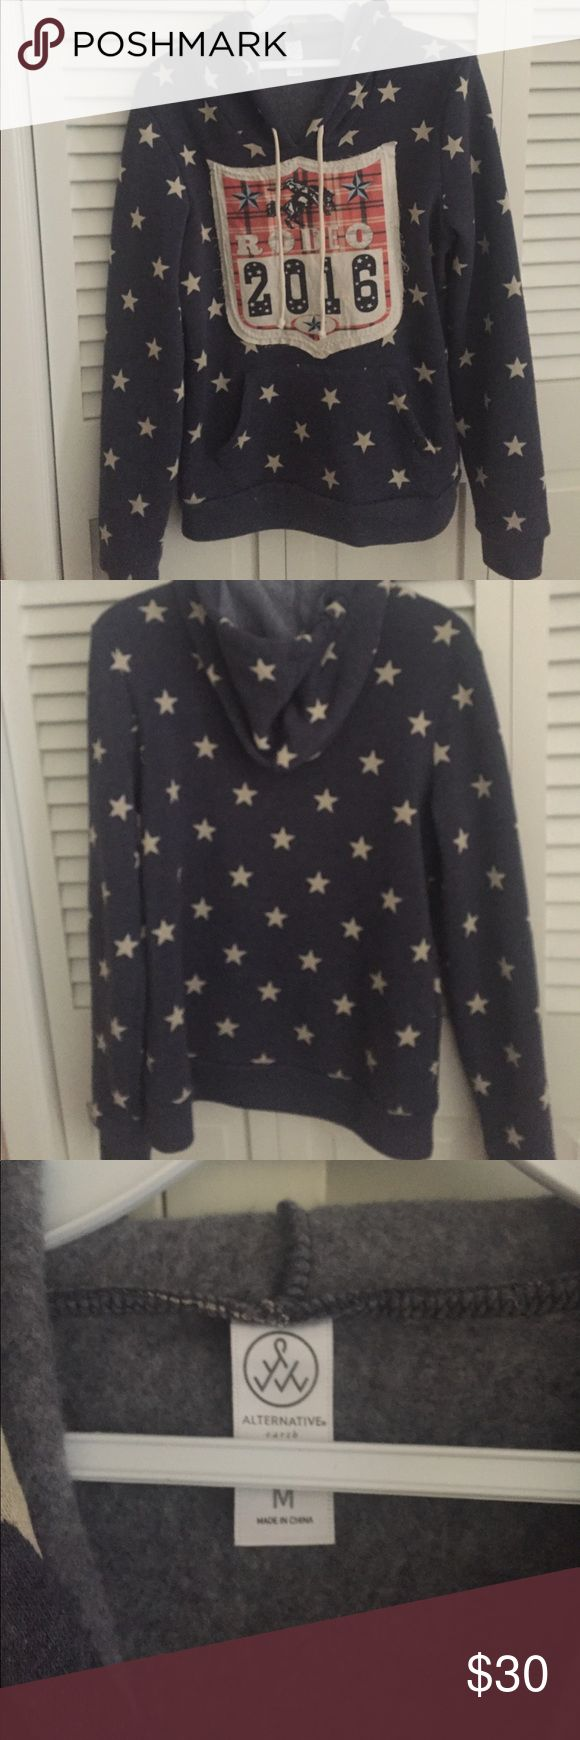 Women's hoodie sweatshirt This hoodie is navy with ivory stars. It has a rodeo patch on the front. It also has one large pouch pocket on the front.  Extremely soft and is polyester. It has been worn twice. alternative Tops Sweatshirts & Hoodies